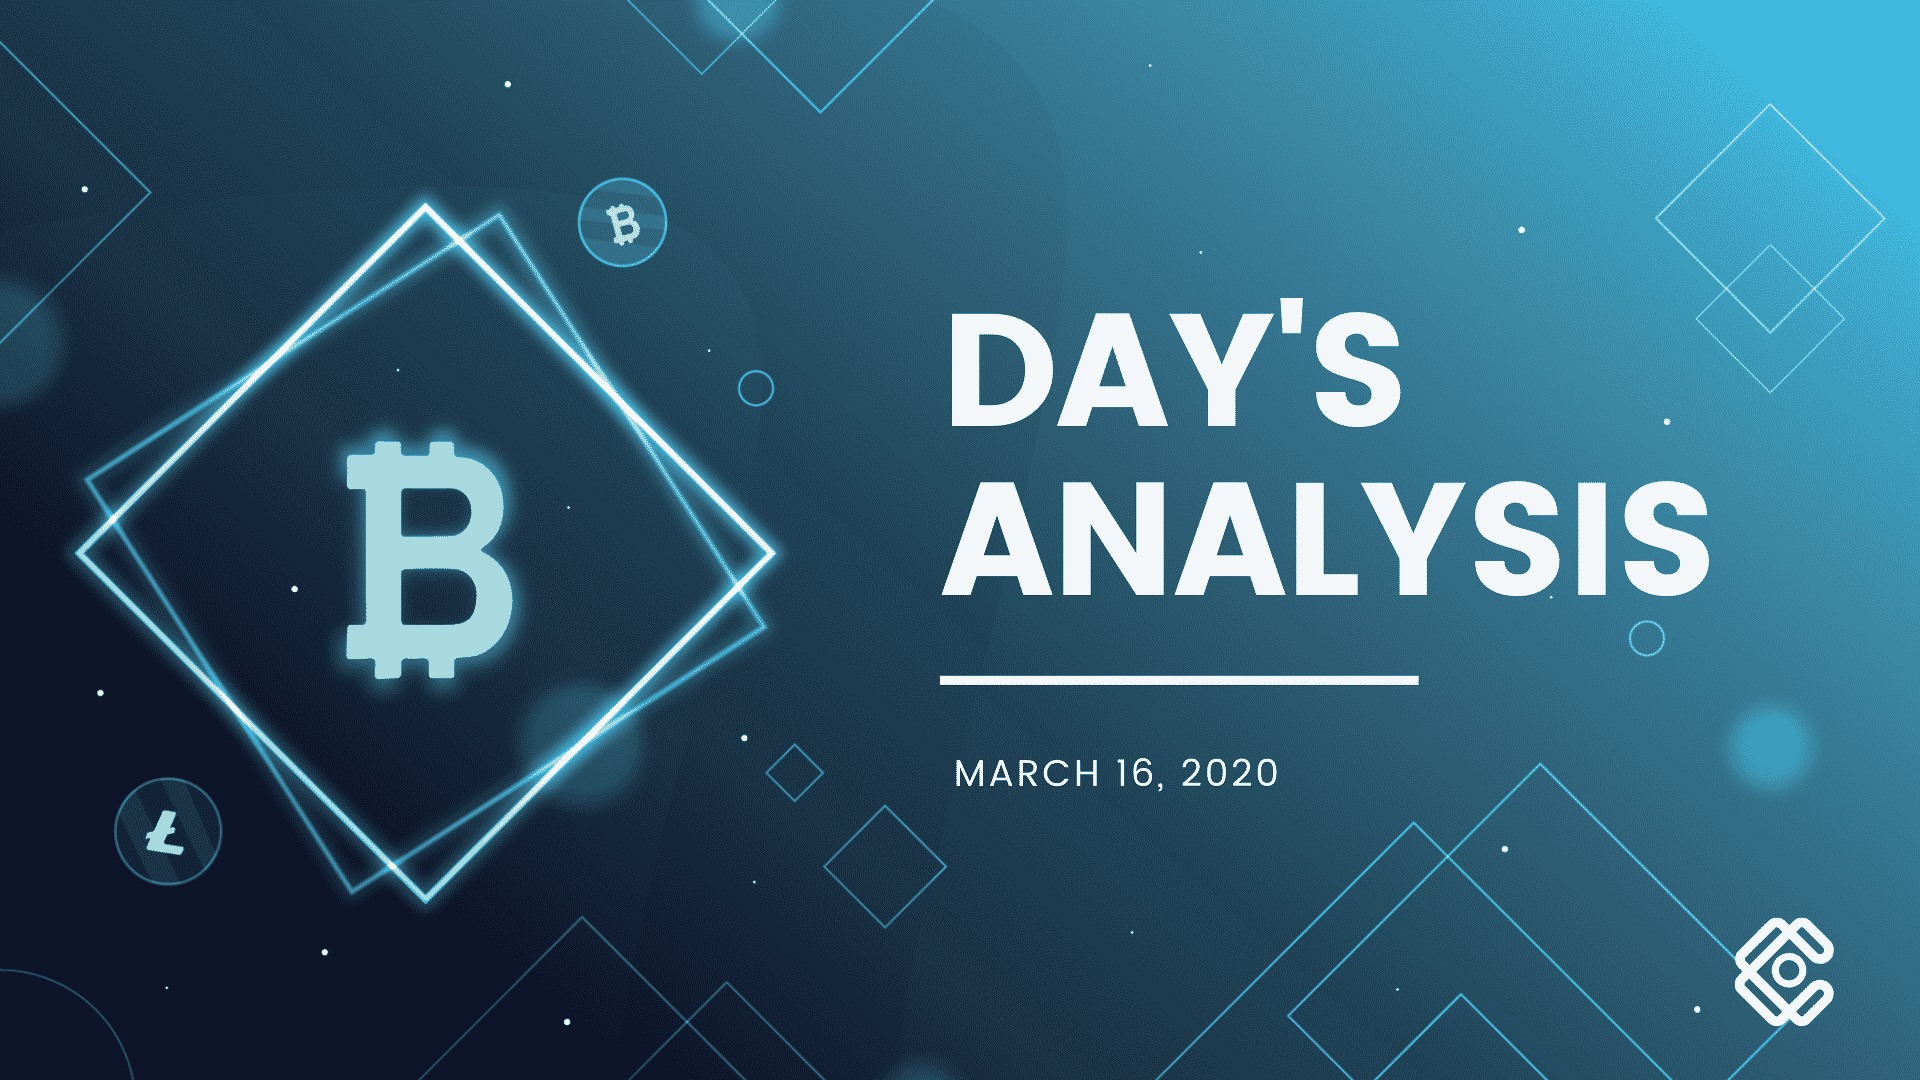 Market Analysis of March 16, 2020